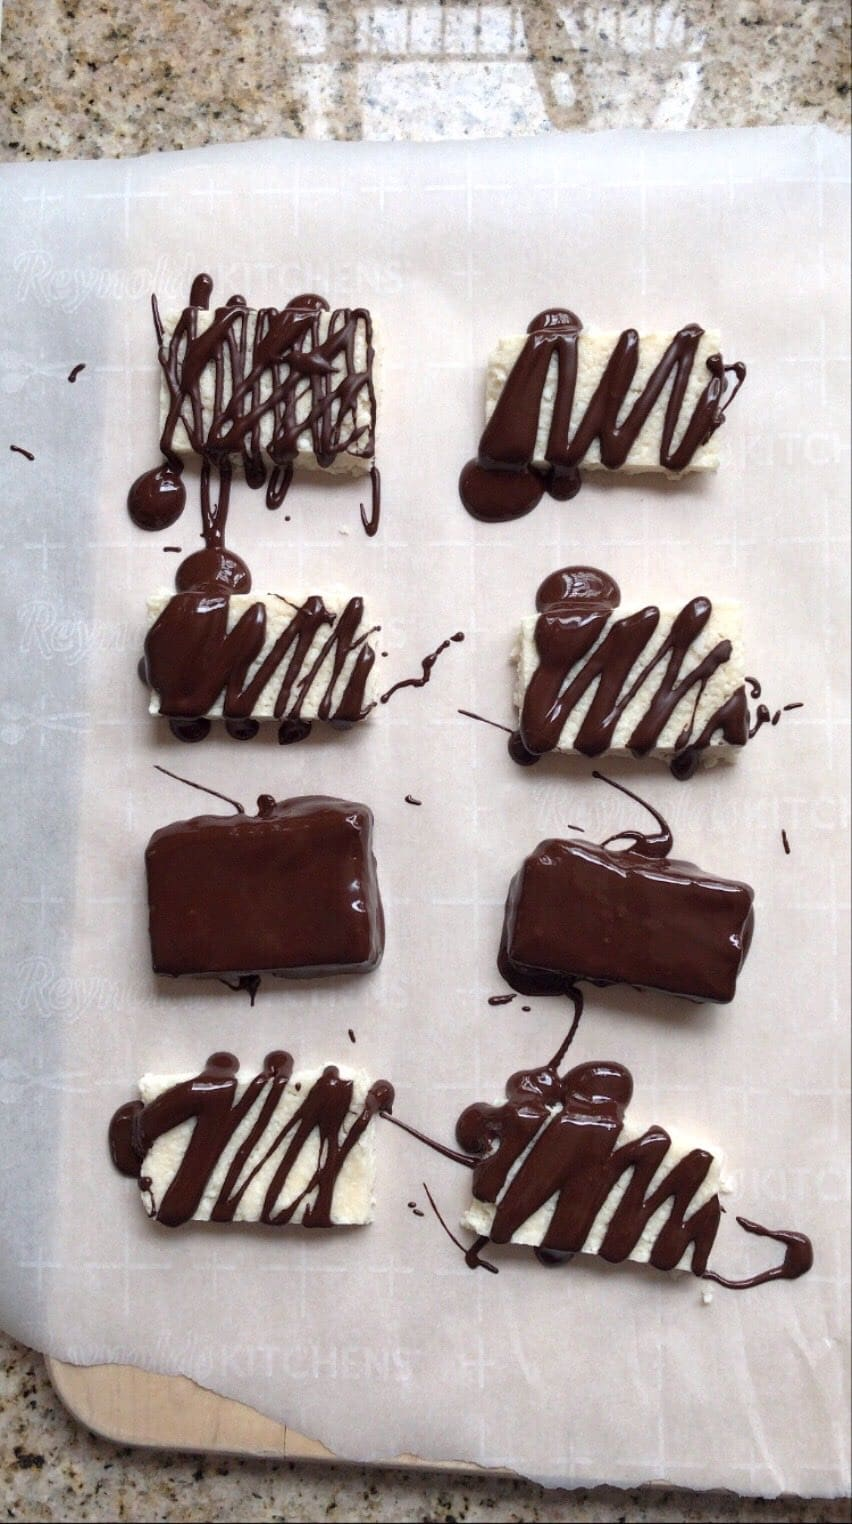 Overhead shot of Mounds Bars with fresh Chocolate Drizzle